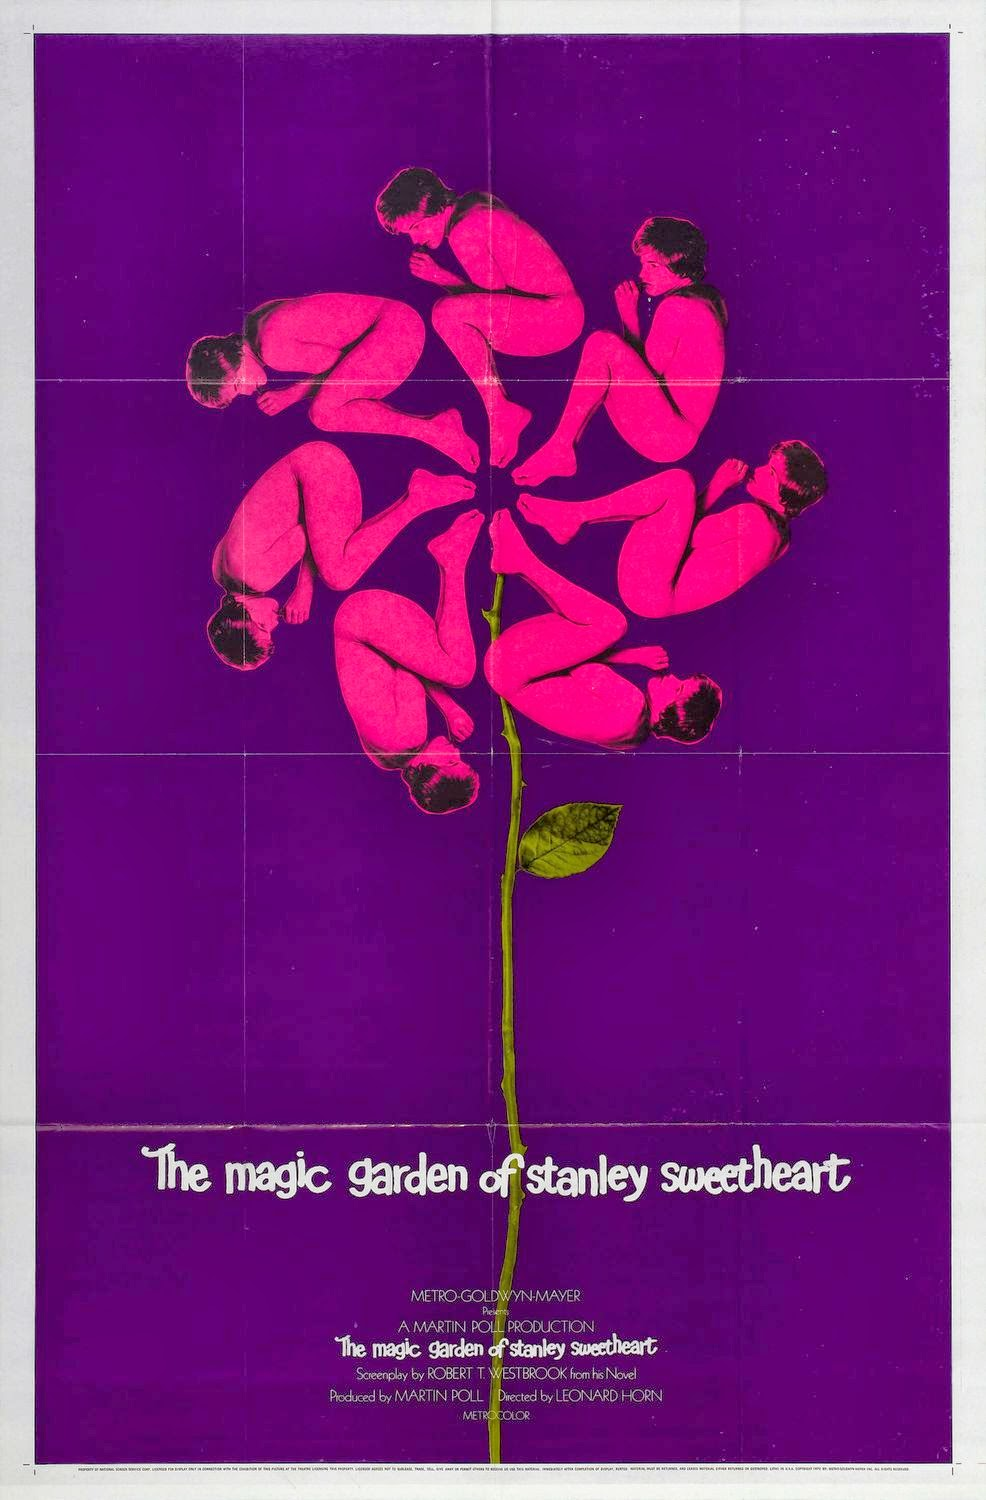 The Magic Garden of Stanely Sweetheart poster